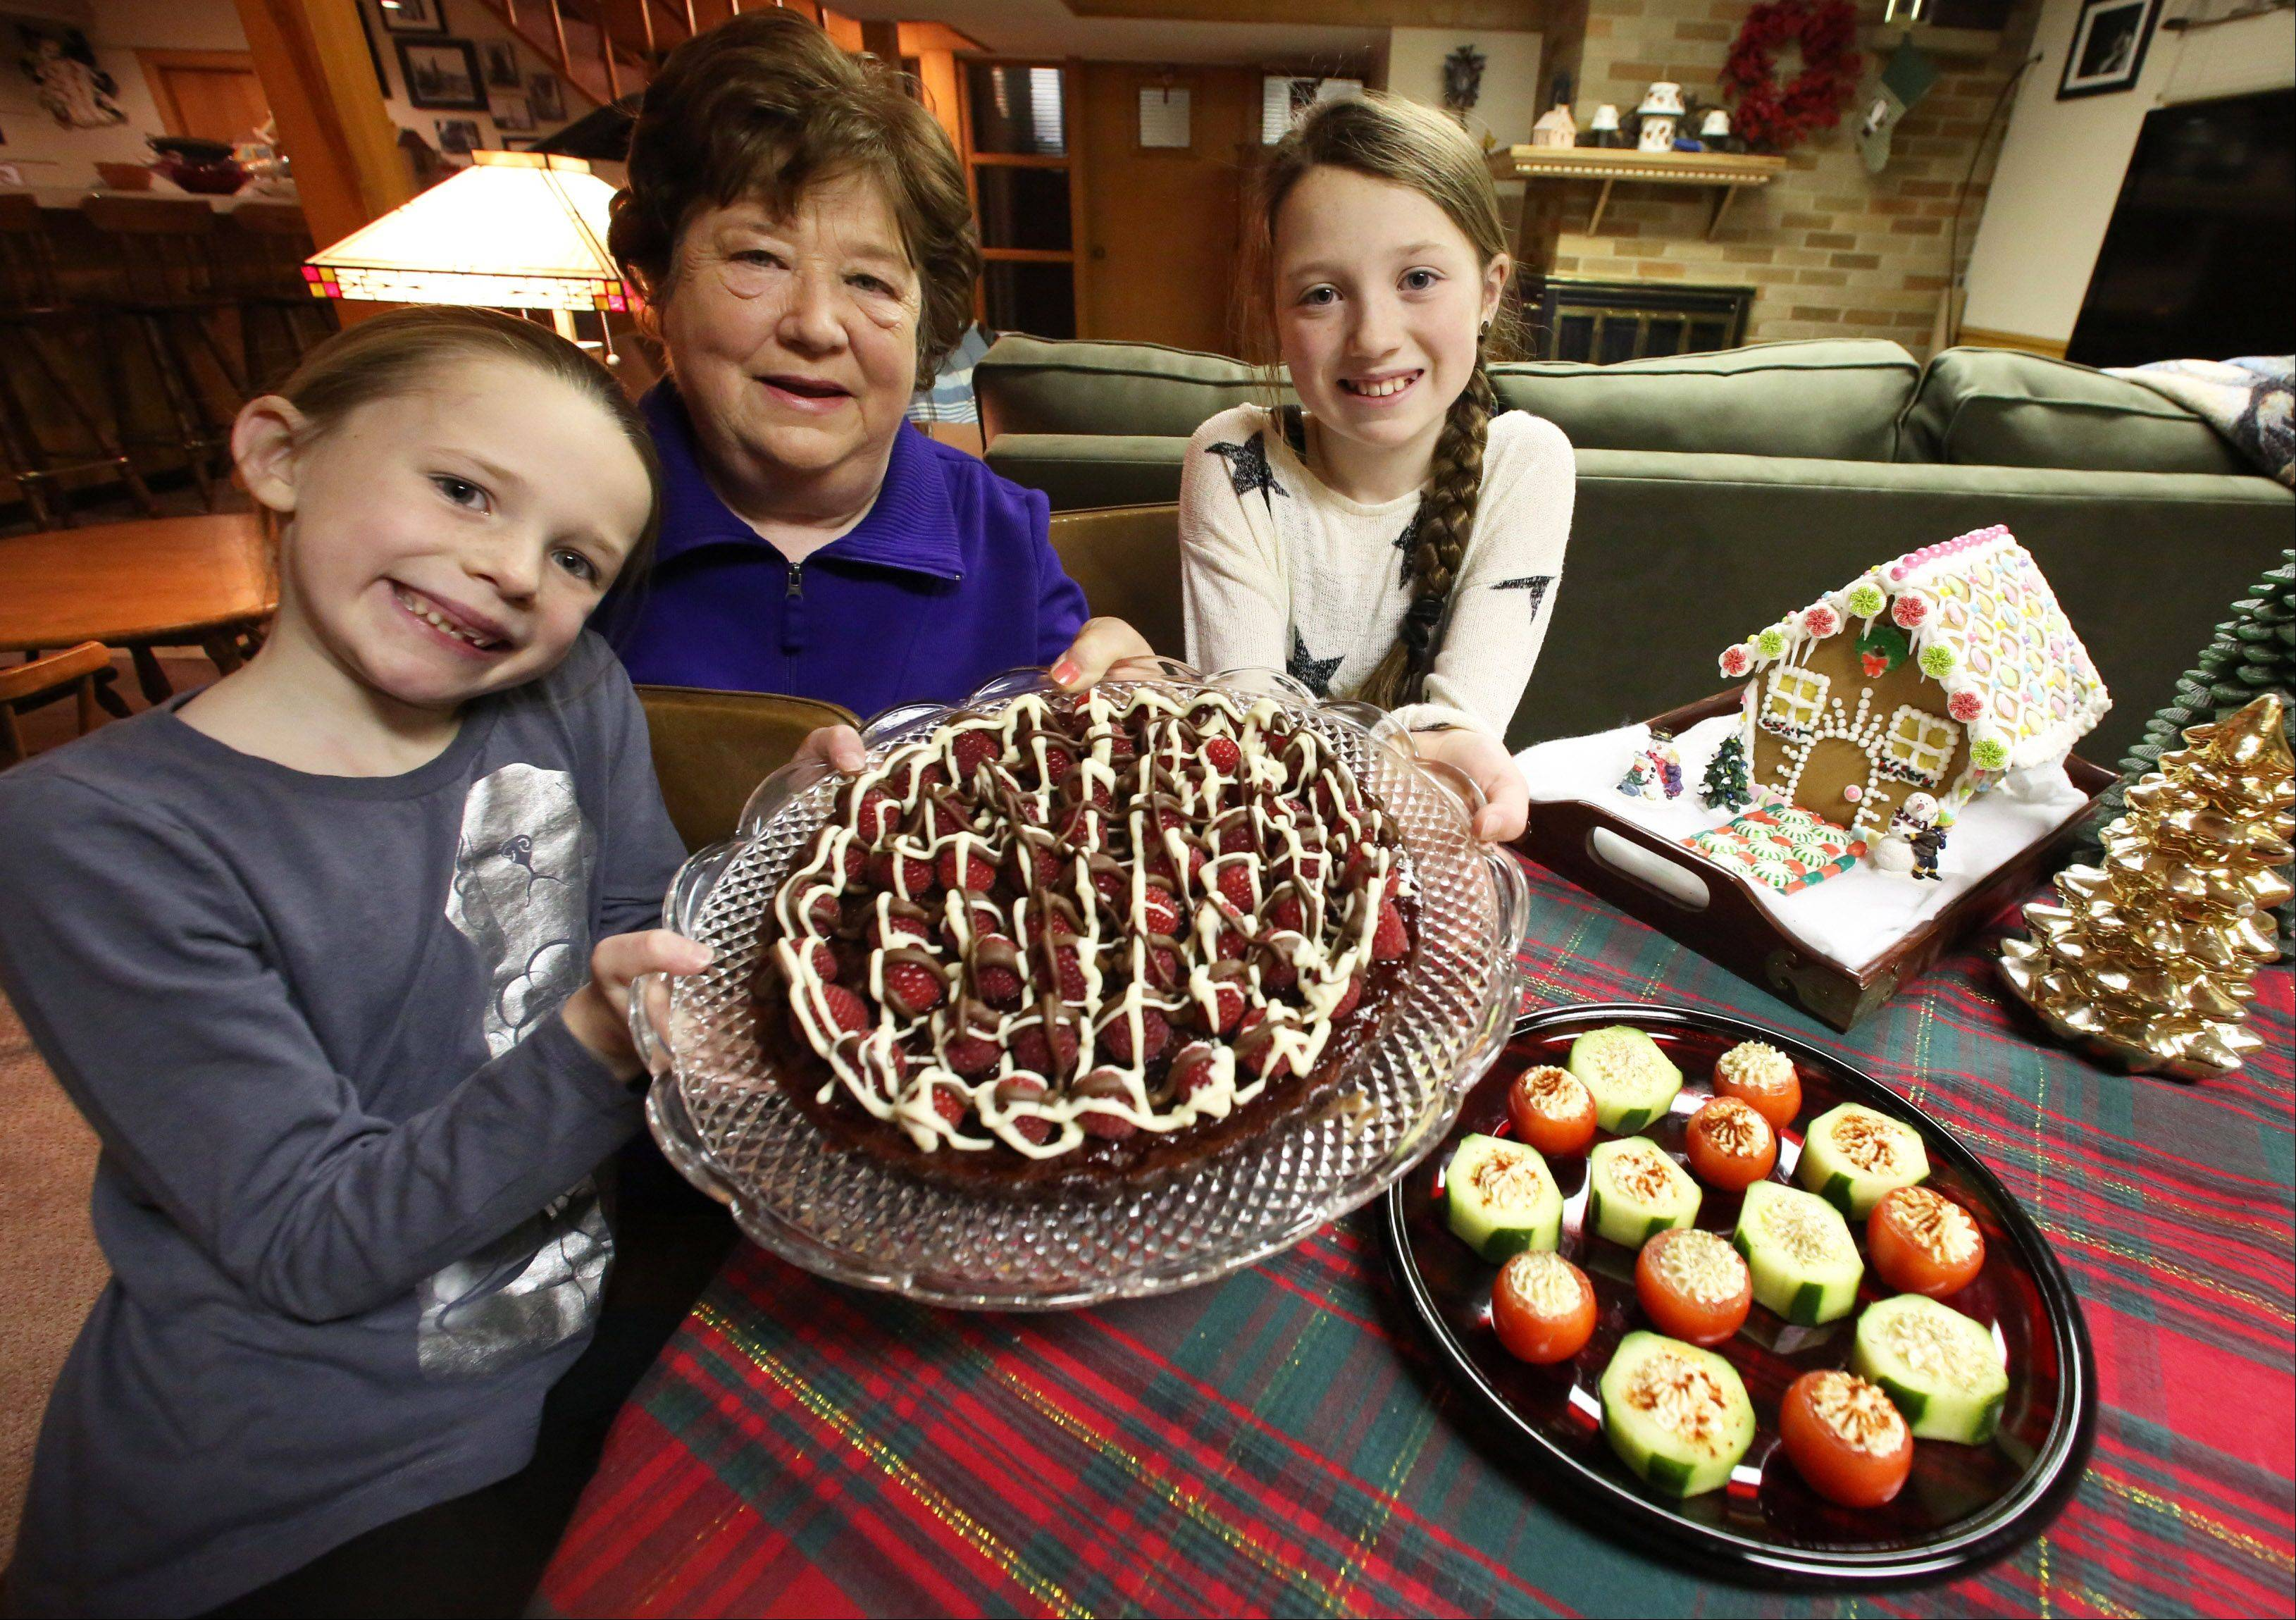 Cook of the Week: Grandma continues baking tradition with new generation